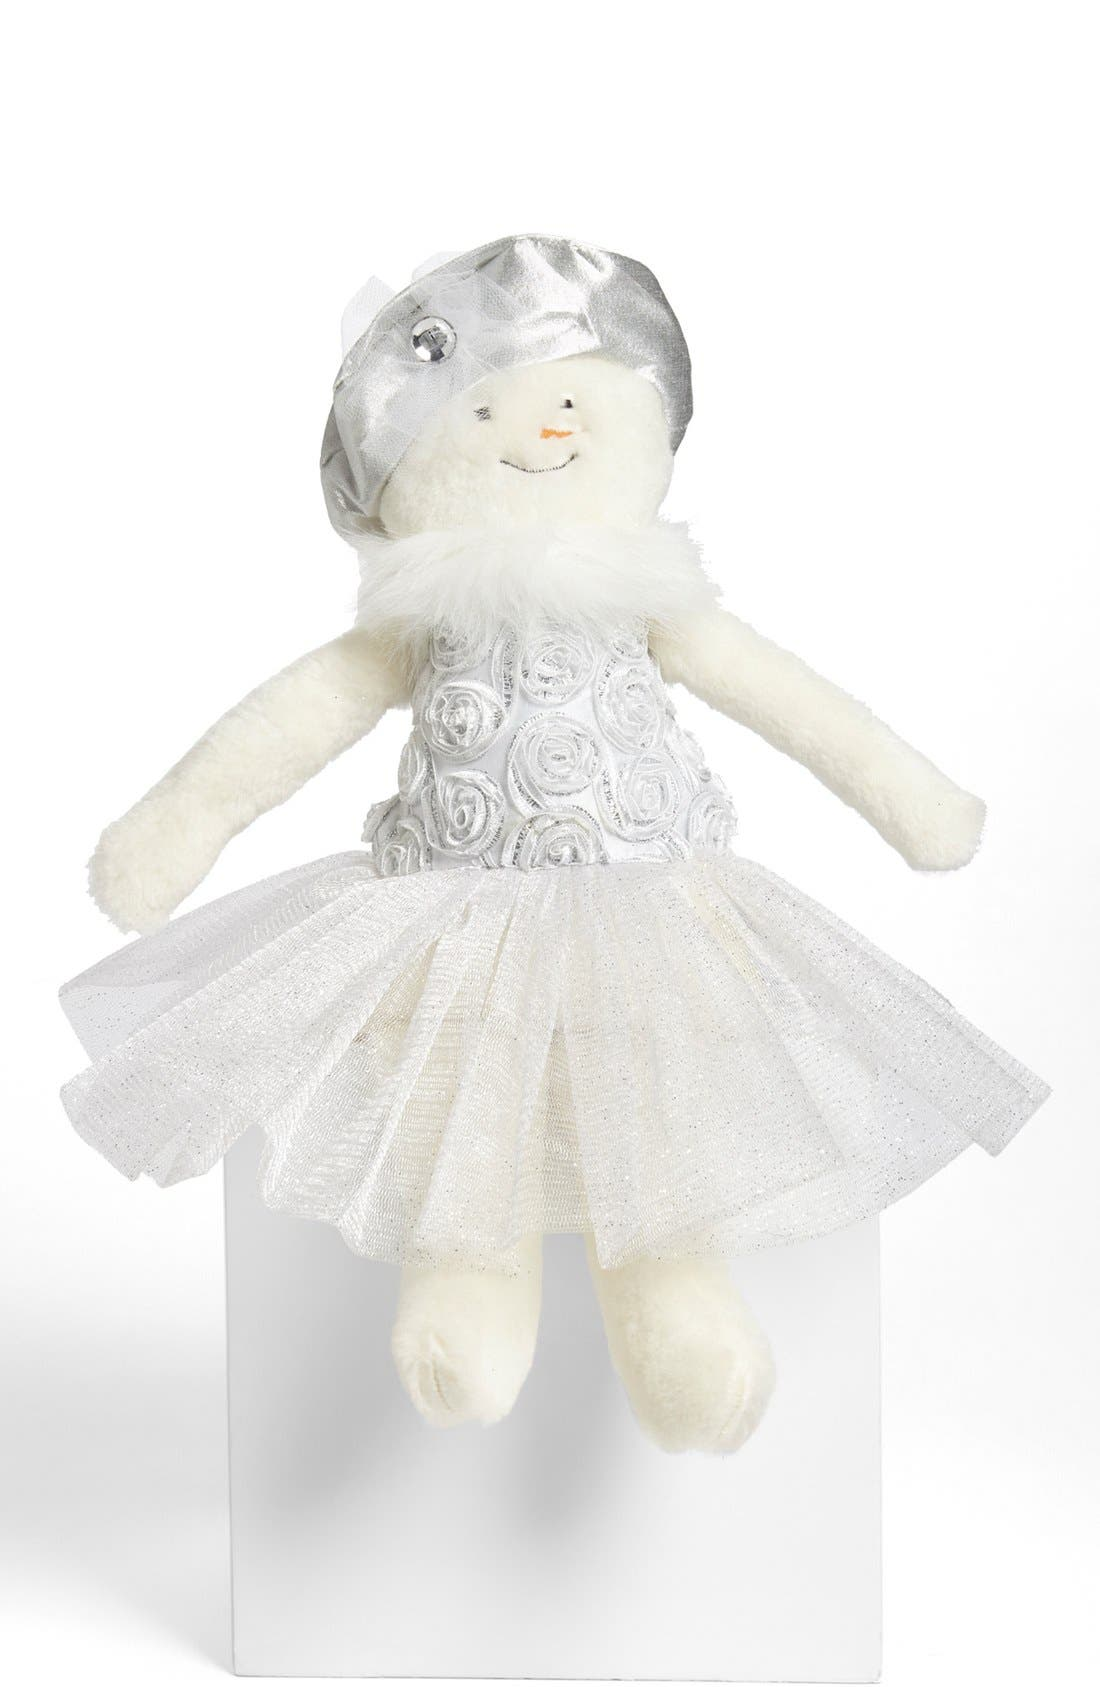 Alternate Image 1 Selected - Woof & Poof 'Party Snowgirl' Doll